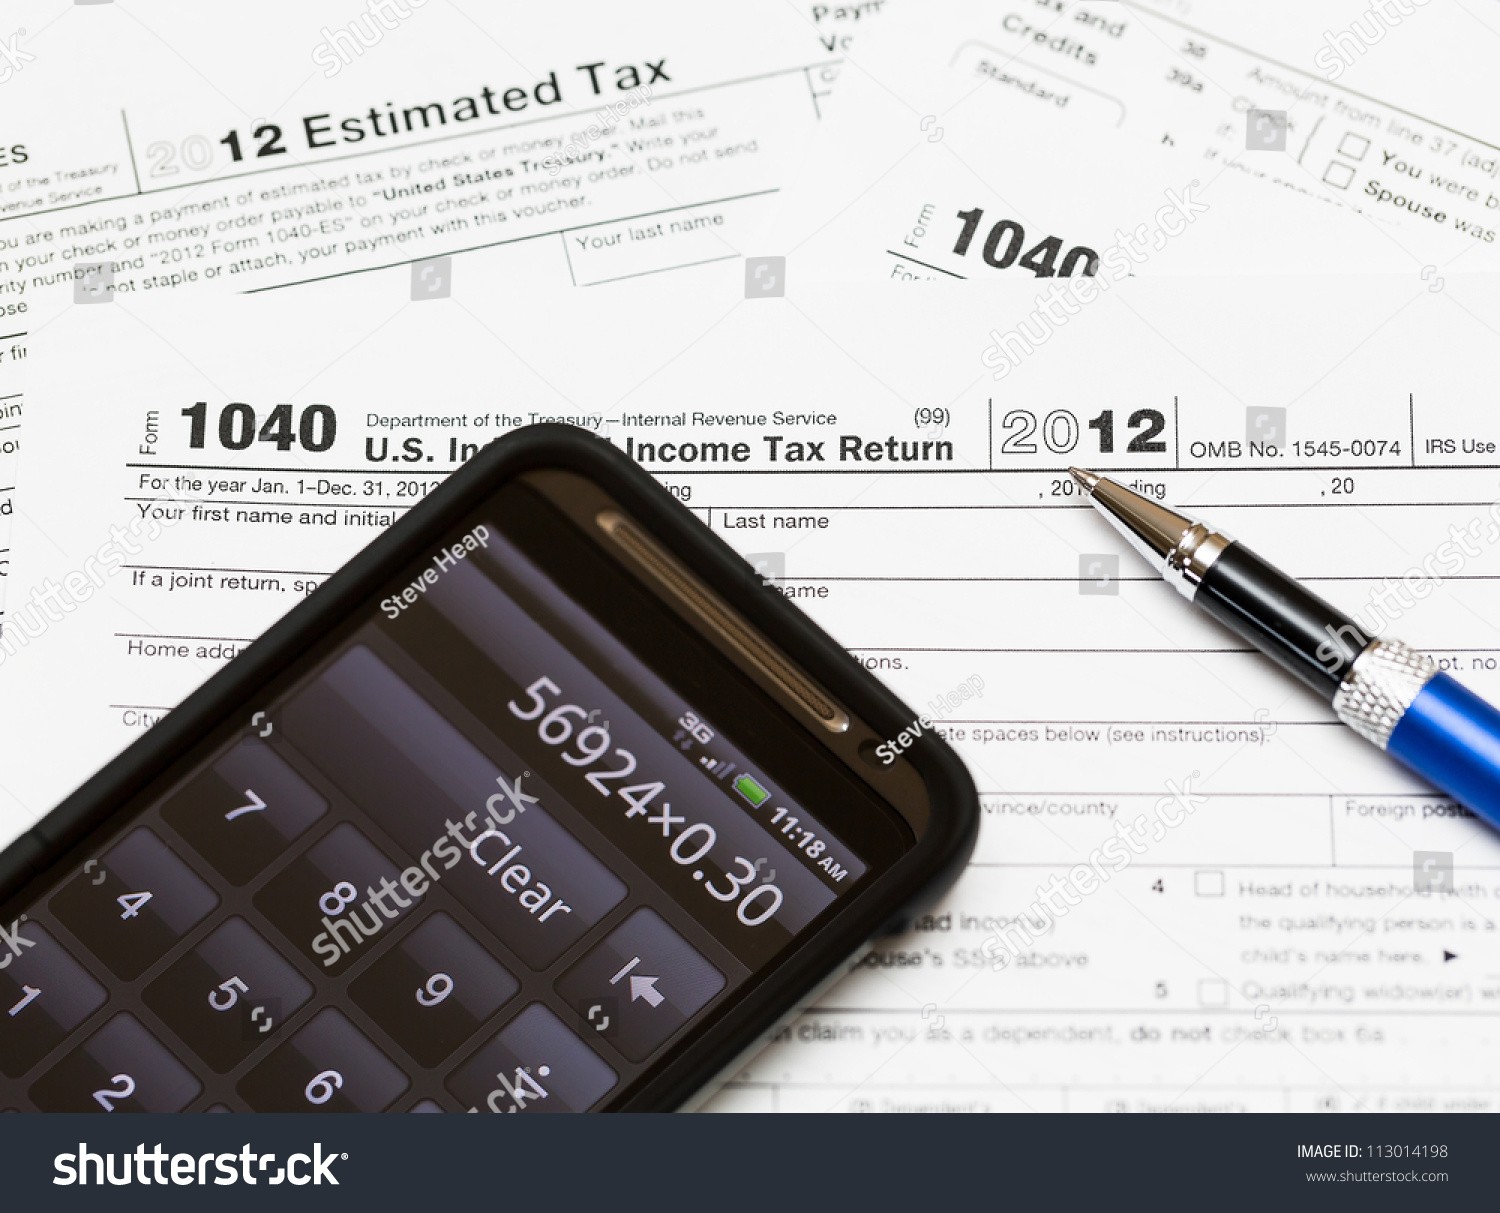 Tax form 1040 for tax year 2012 for us individual tax for 1040 tax table 2012